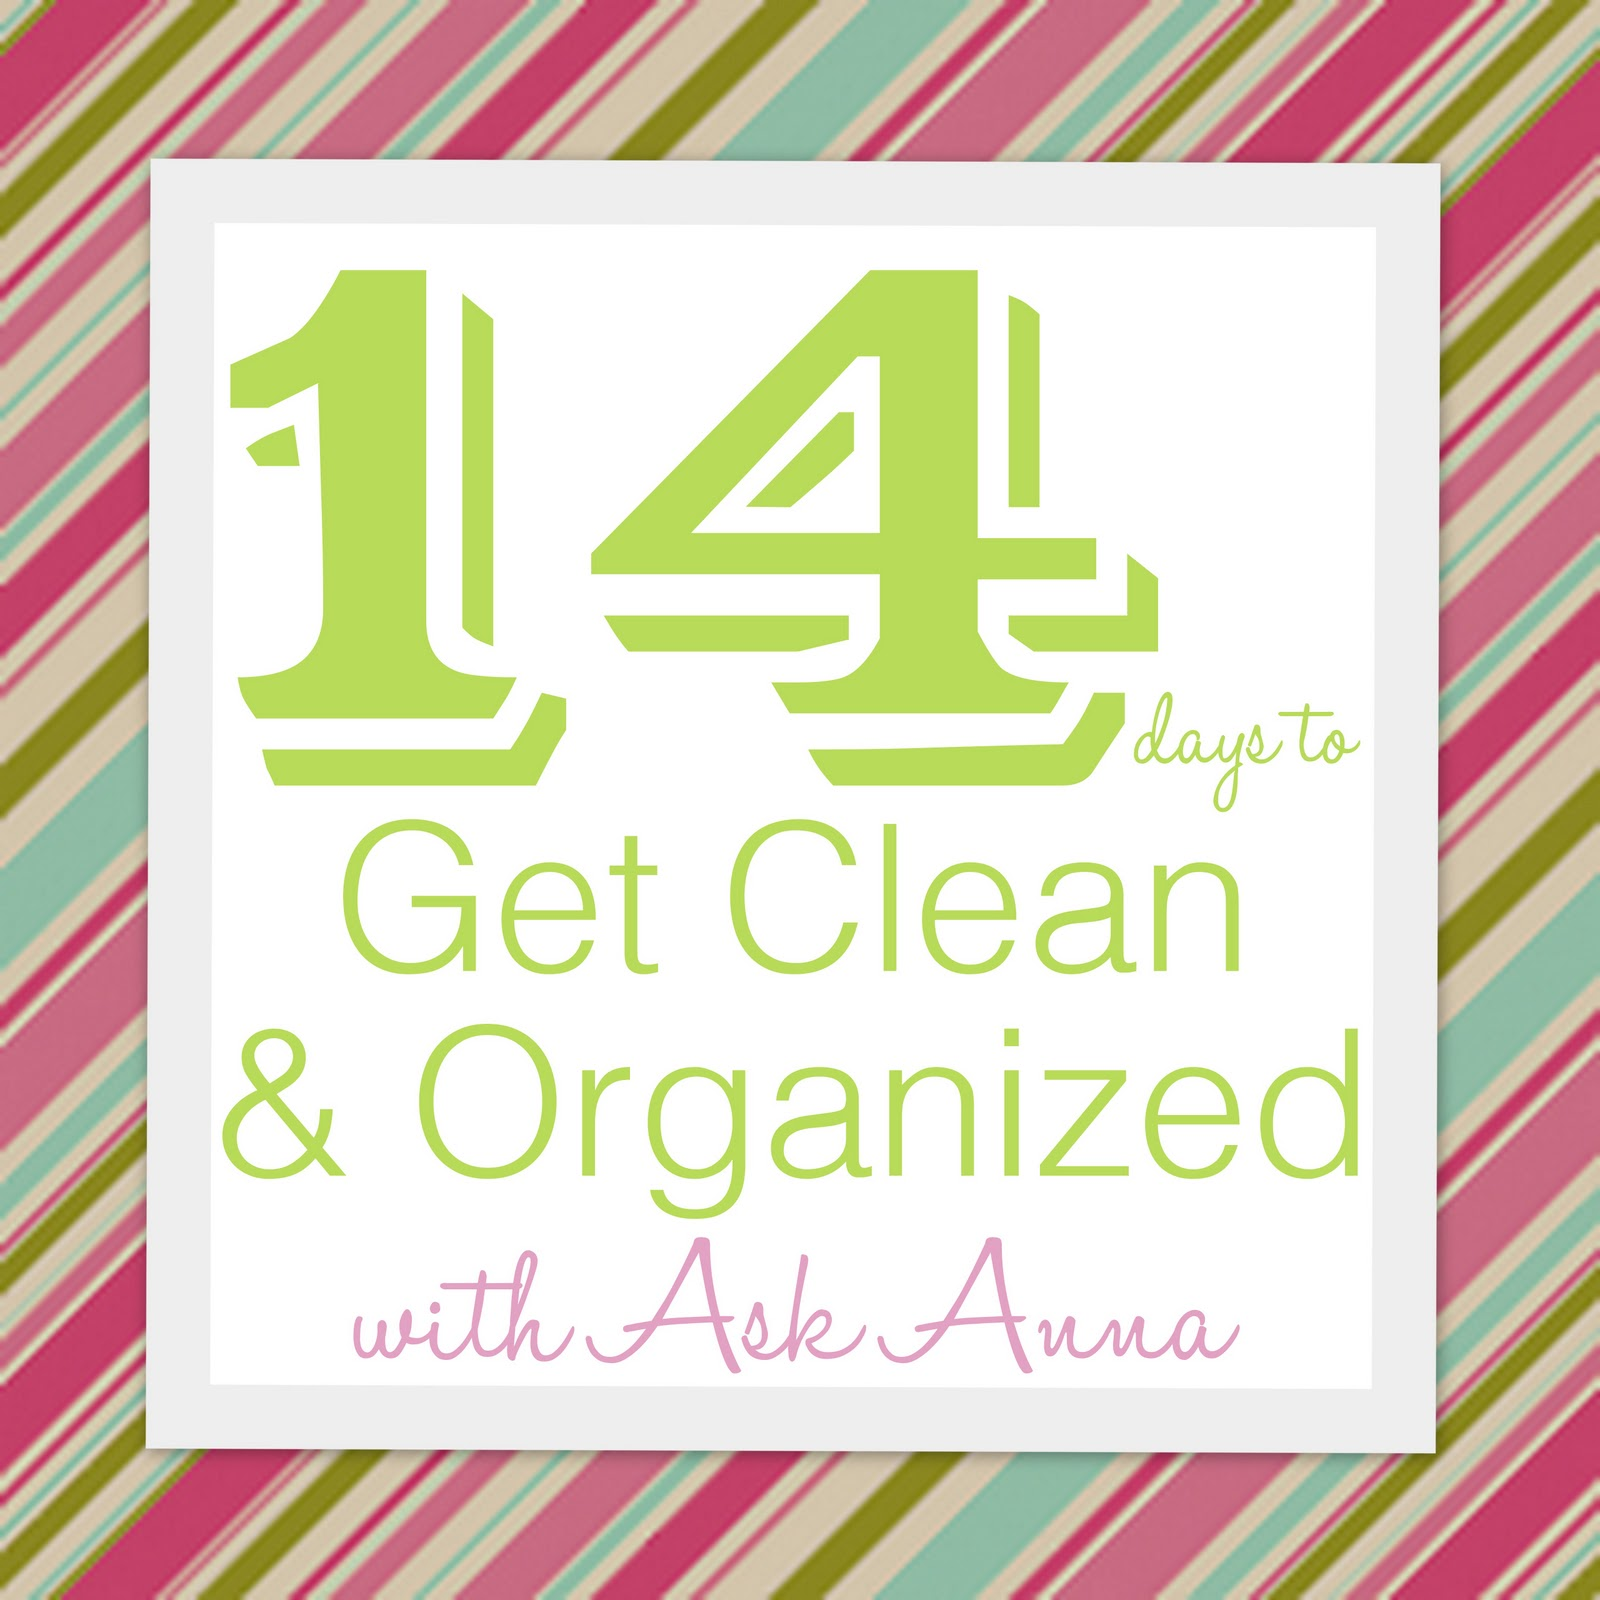 Cleaning Challenge: 14 Days to Get Clean & Organized!